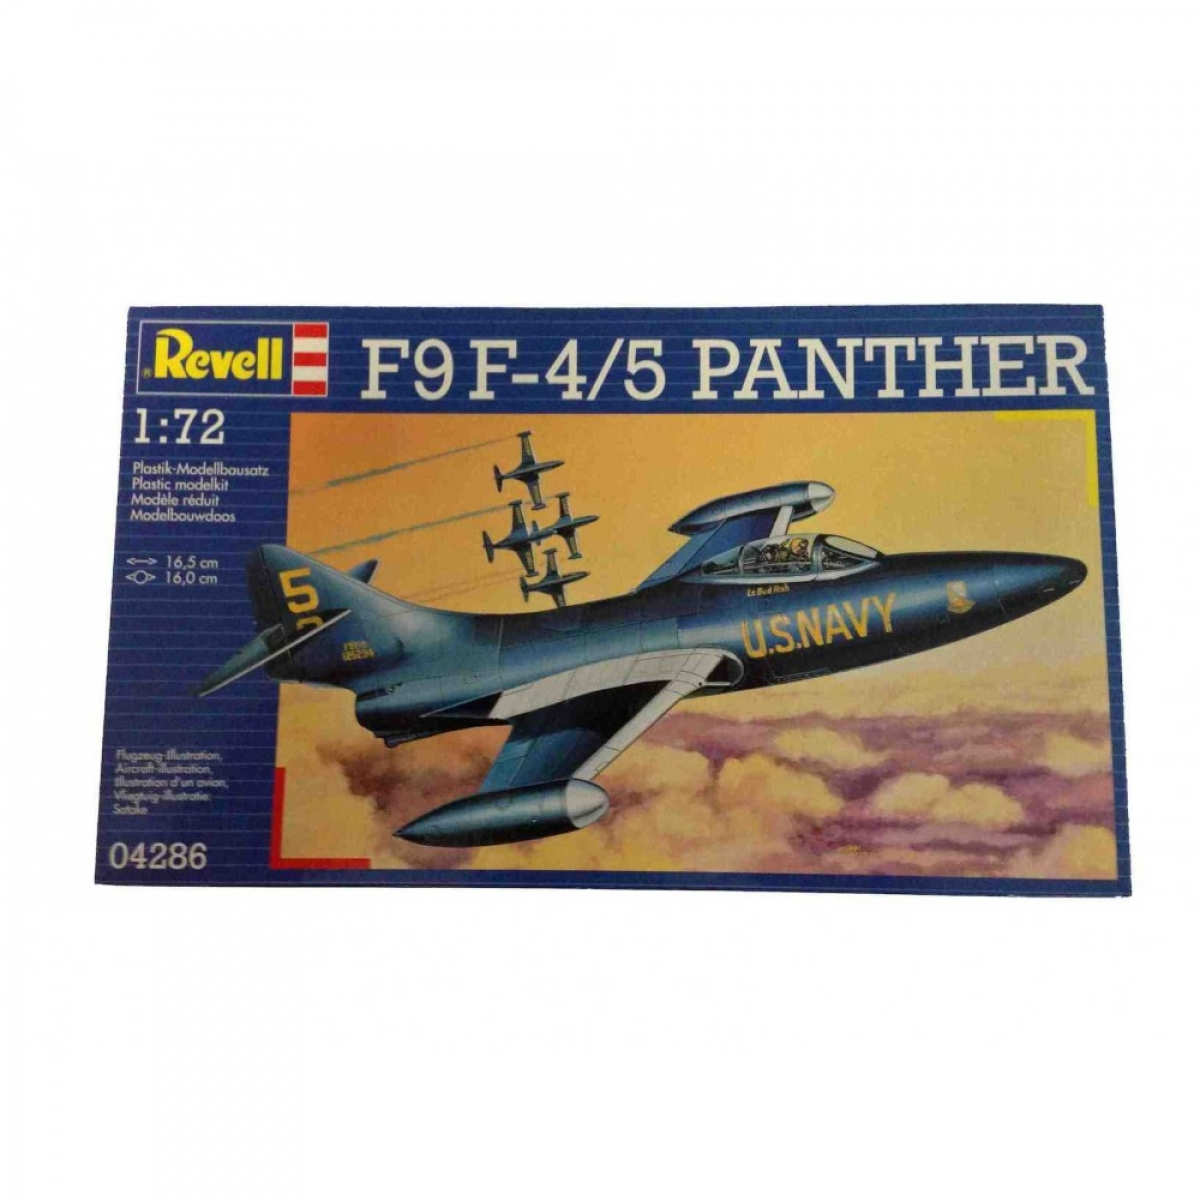 Revell 04286 - F9 F-4/5 Panther